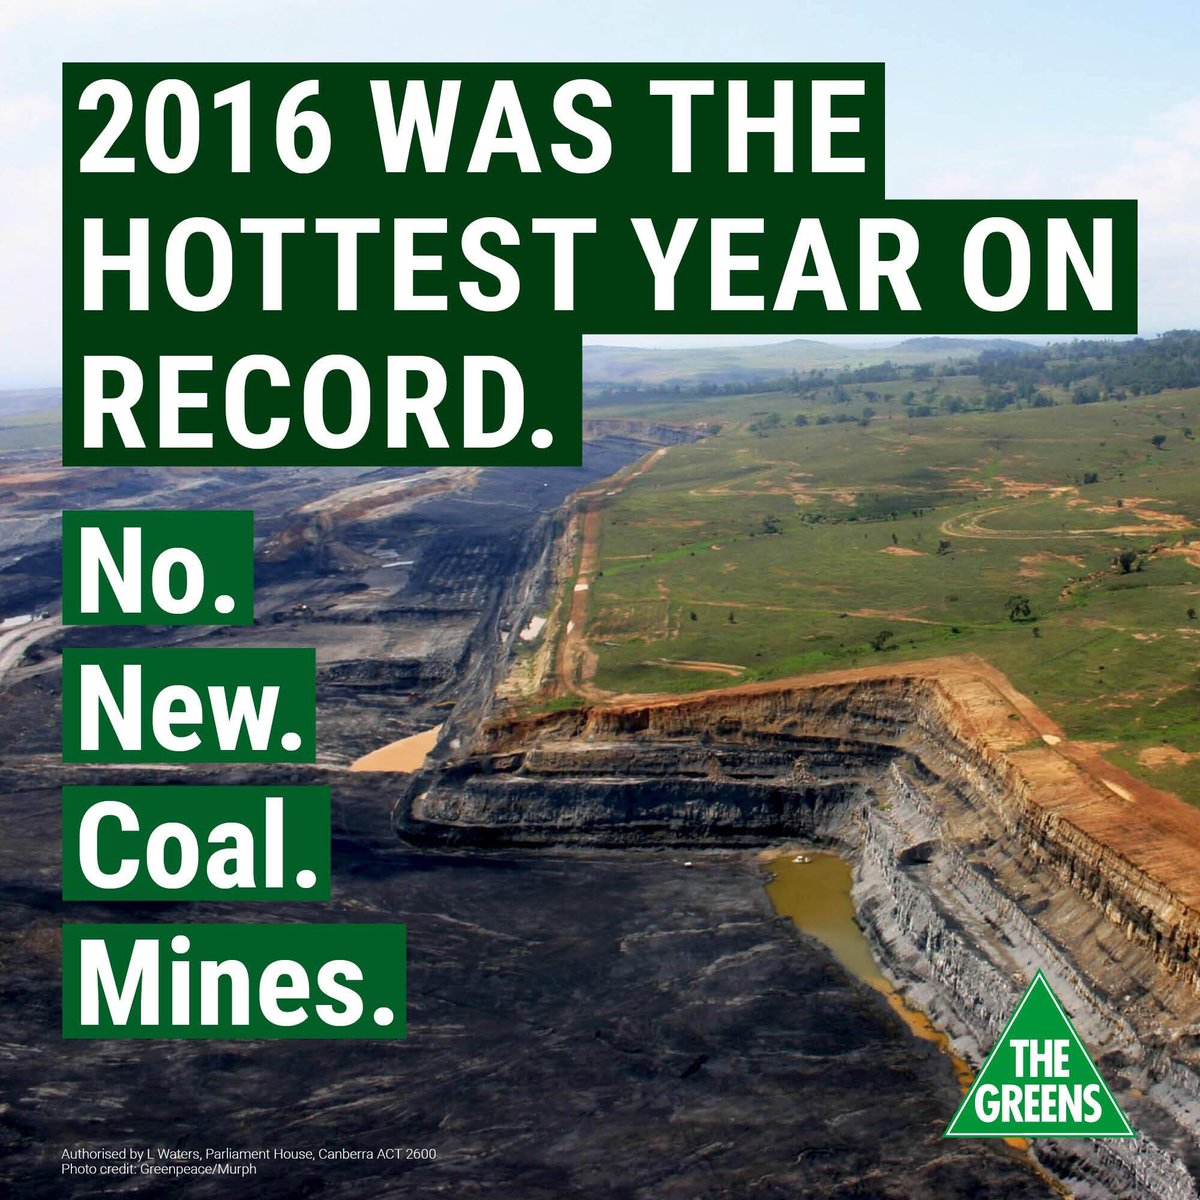 As governments are failing to act the community will need to step up to protect itself. No new coal mines! #KeepItInTheGround #auspol #COP21<br>http://pic.twitter.com/rqf9SA3srW